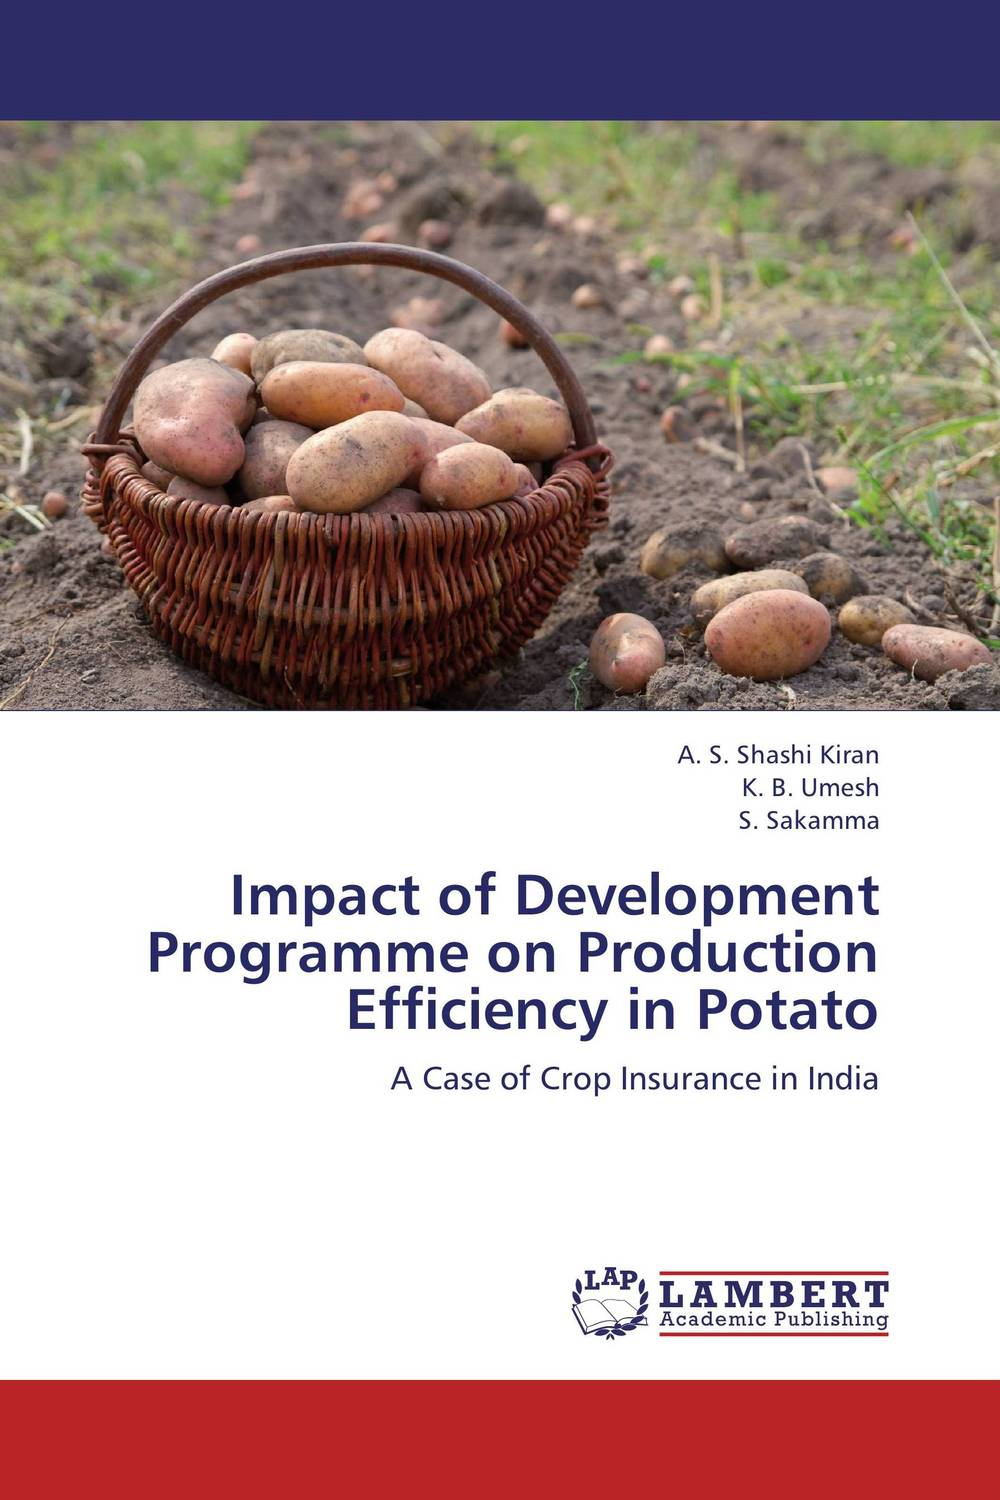 Impact of Development Programme on Production Efficiency in Potato rajsinh mohite impact of national leprosy eradication programme